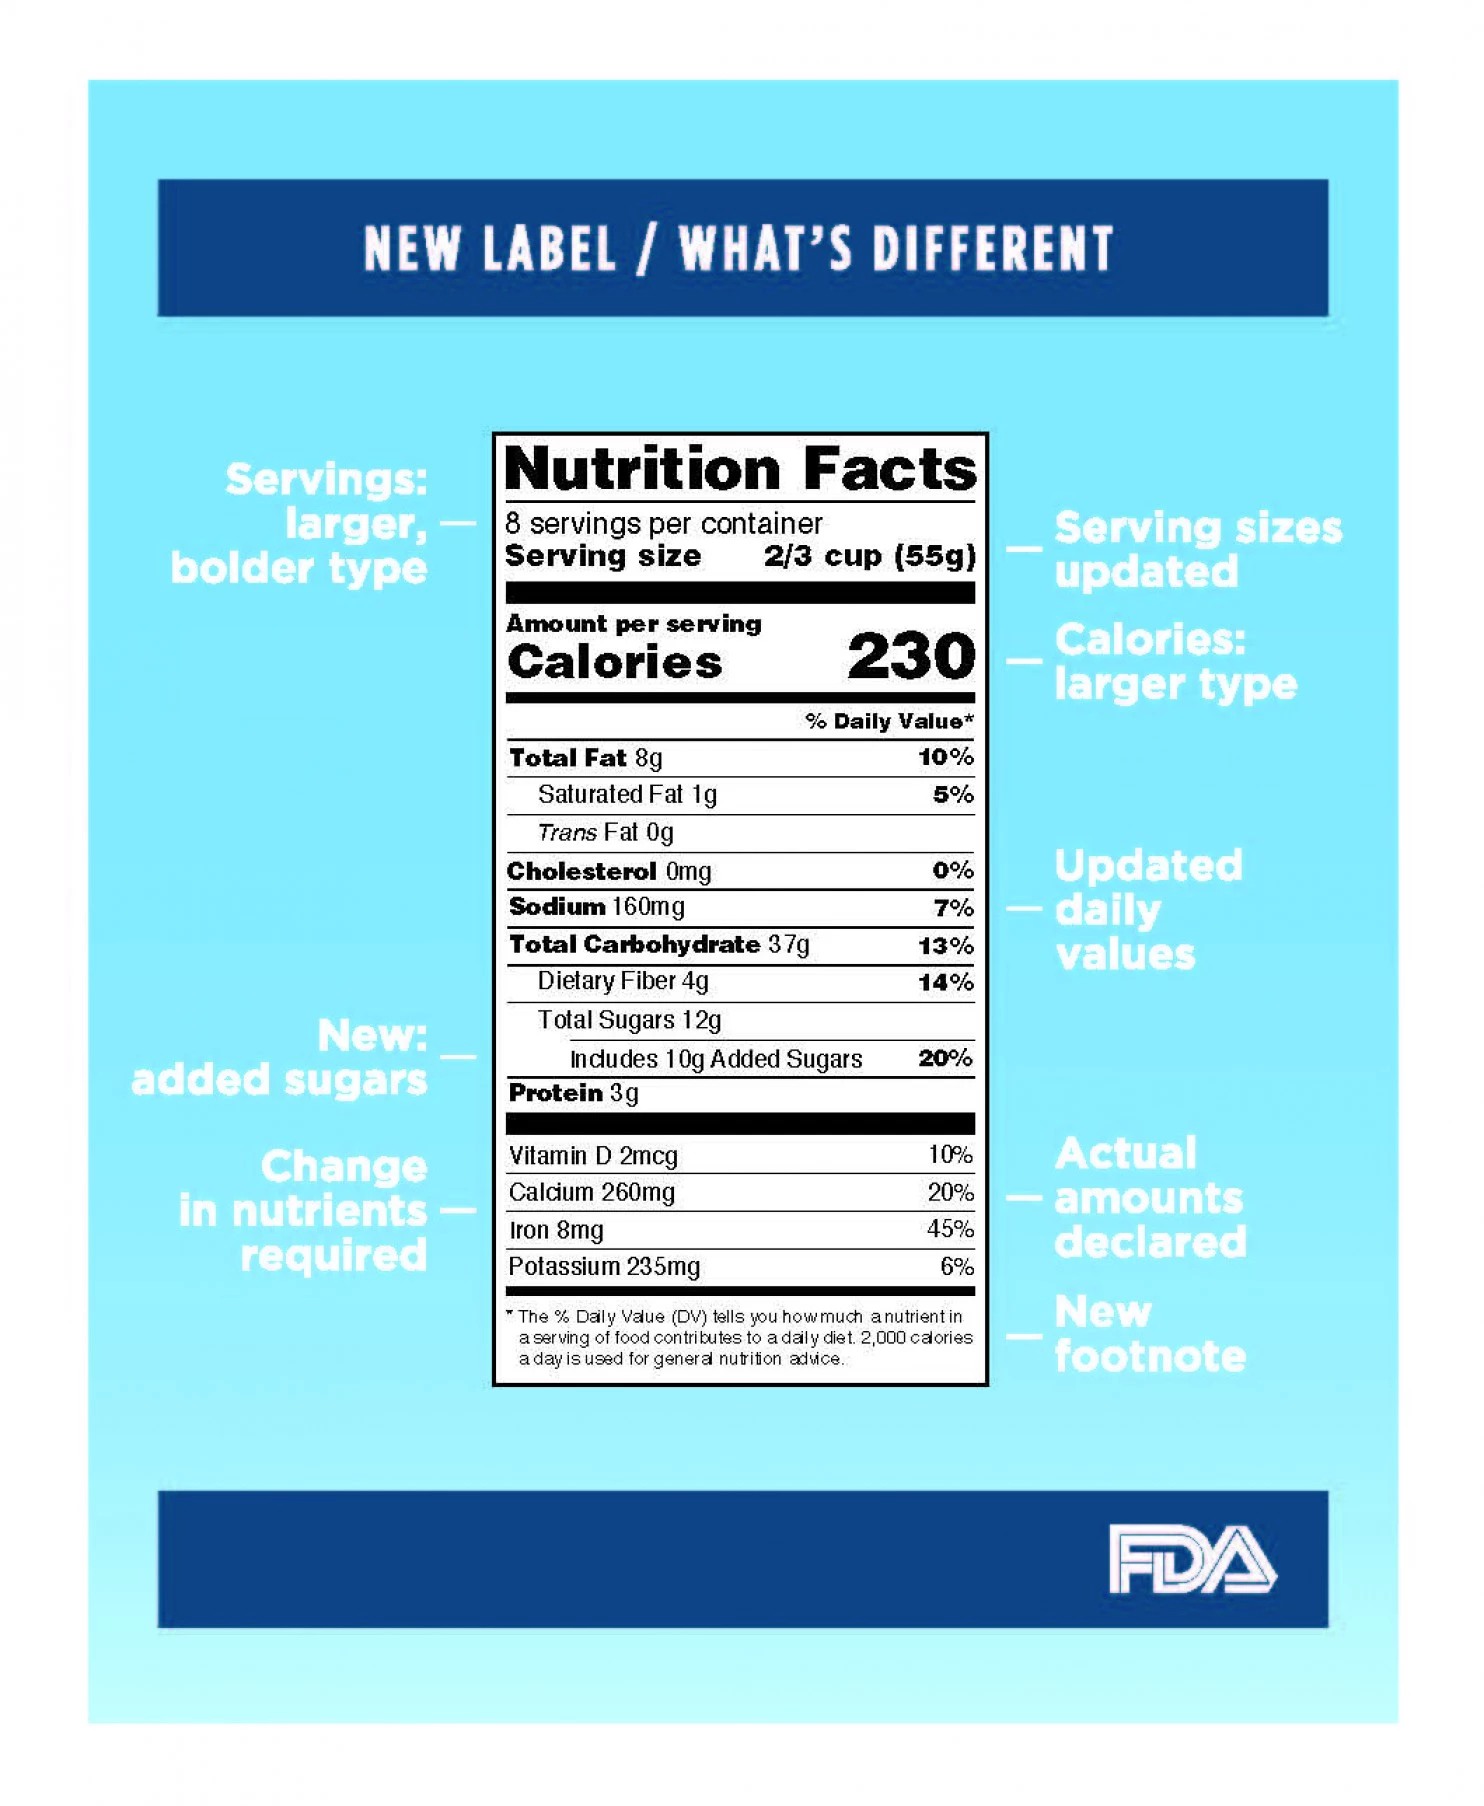 FDA Food Label